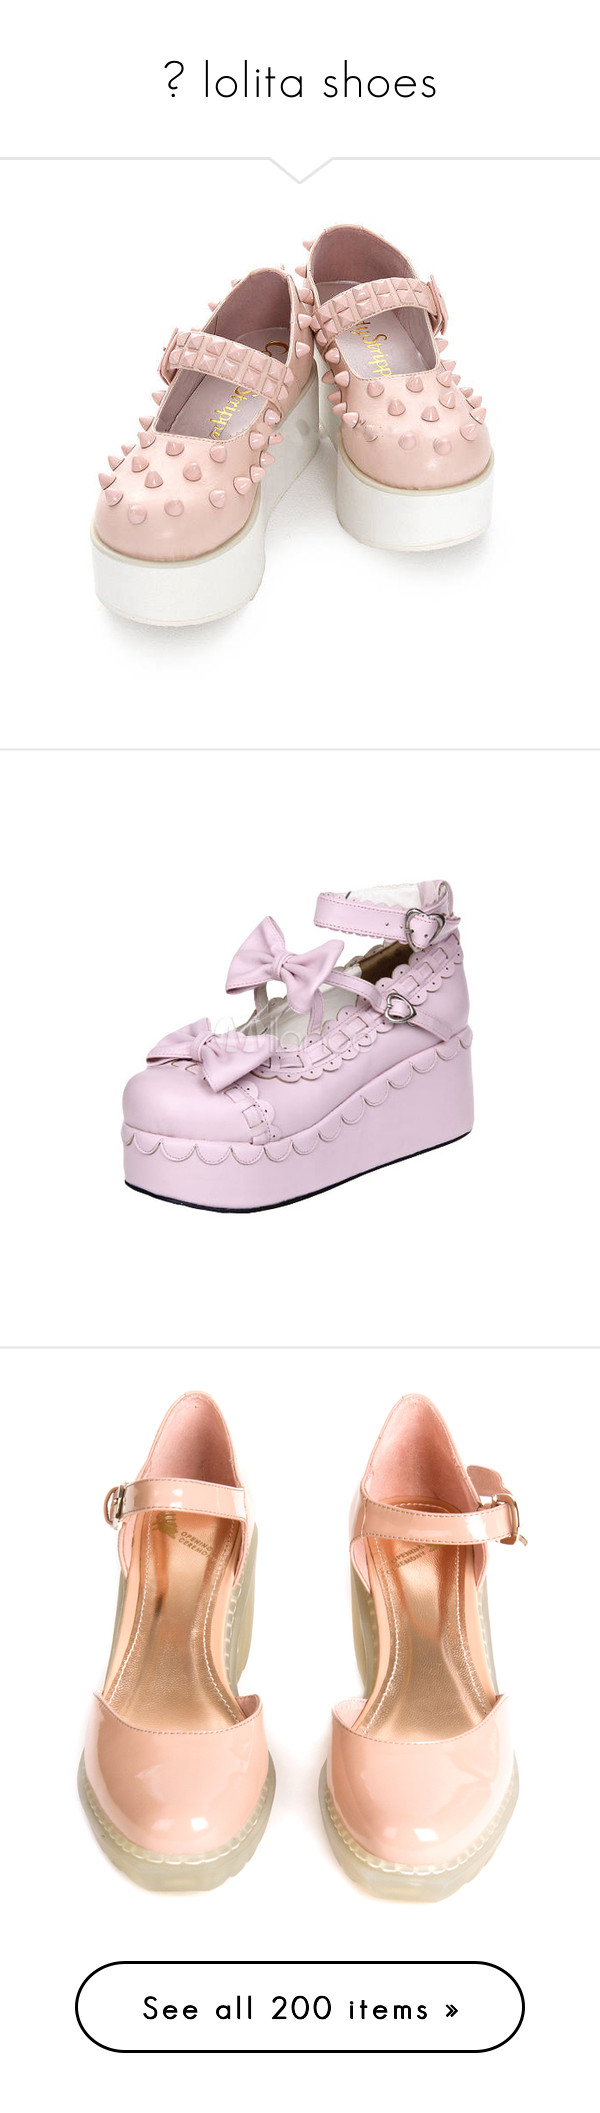 """♡ lolita shoes"" by feels-like-this-could-be-forever ❤ liked on Polyvore featuring shoes, platforms, footwear, bow shoes, pleather shoes, platform shoes, pu leather shoes, flats, pink and heels"